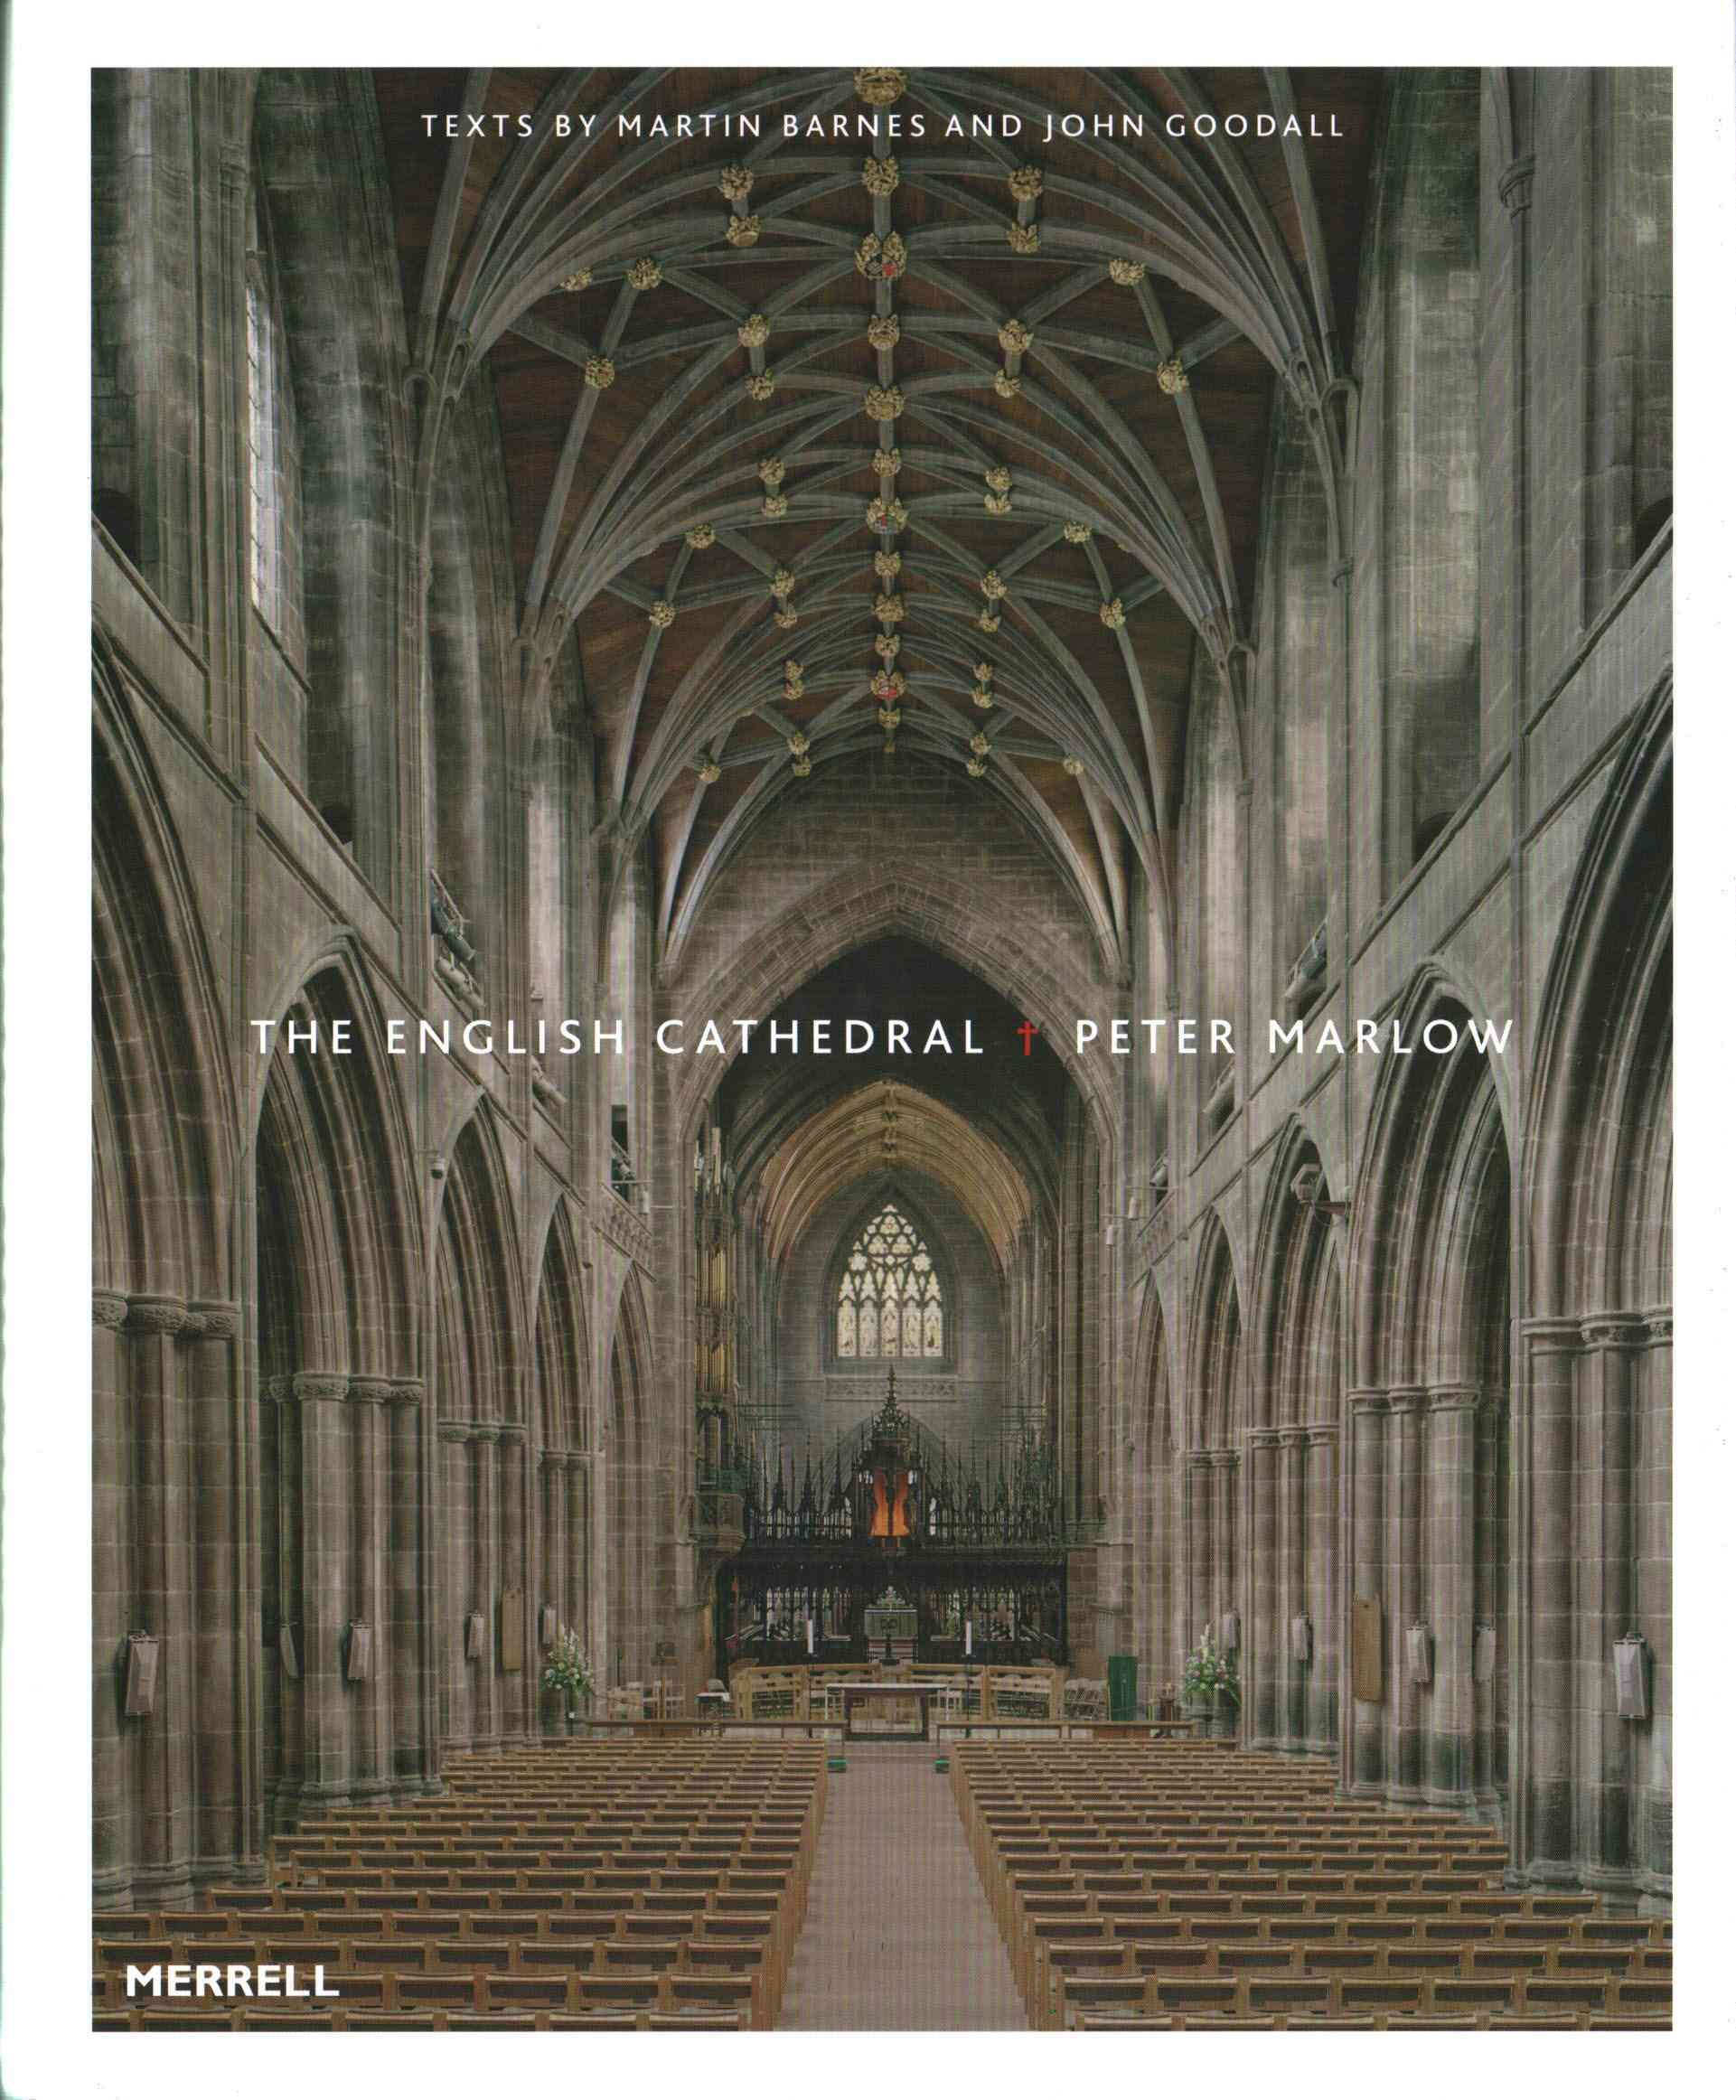 Among the most magnificent buildings of england are its anglican among the most magnificent buildings of england are its anglican cathedrals great symbols of spiritual biocorpaavc